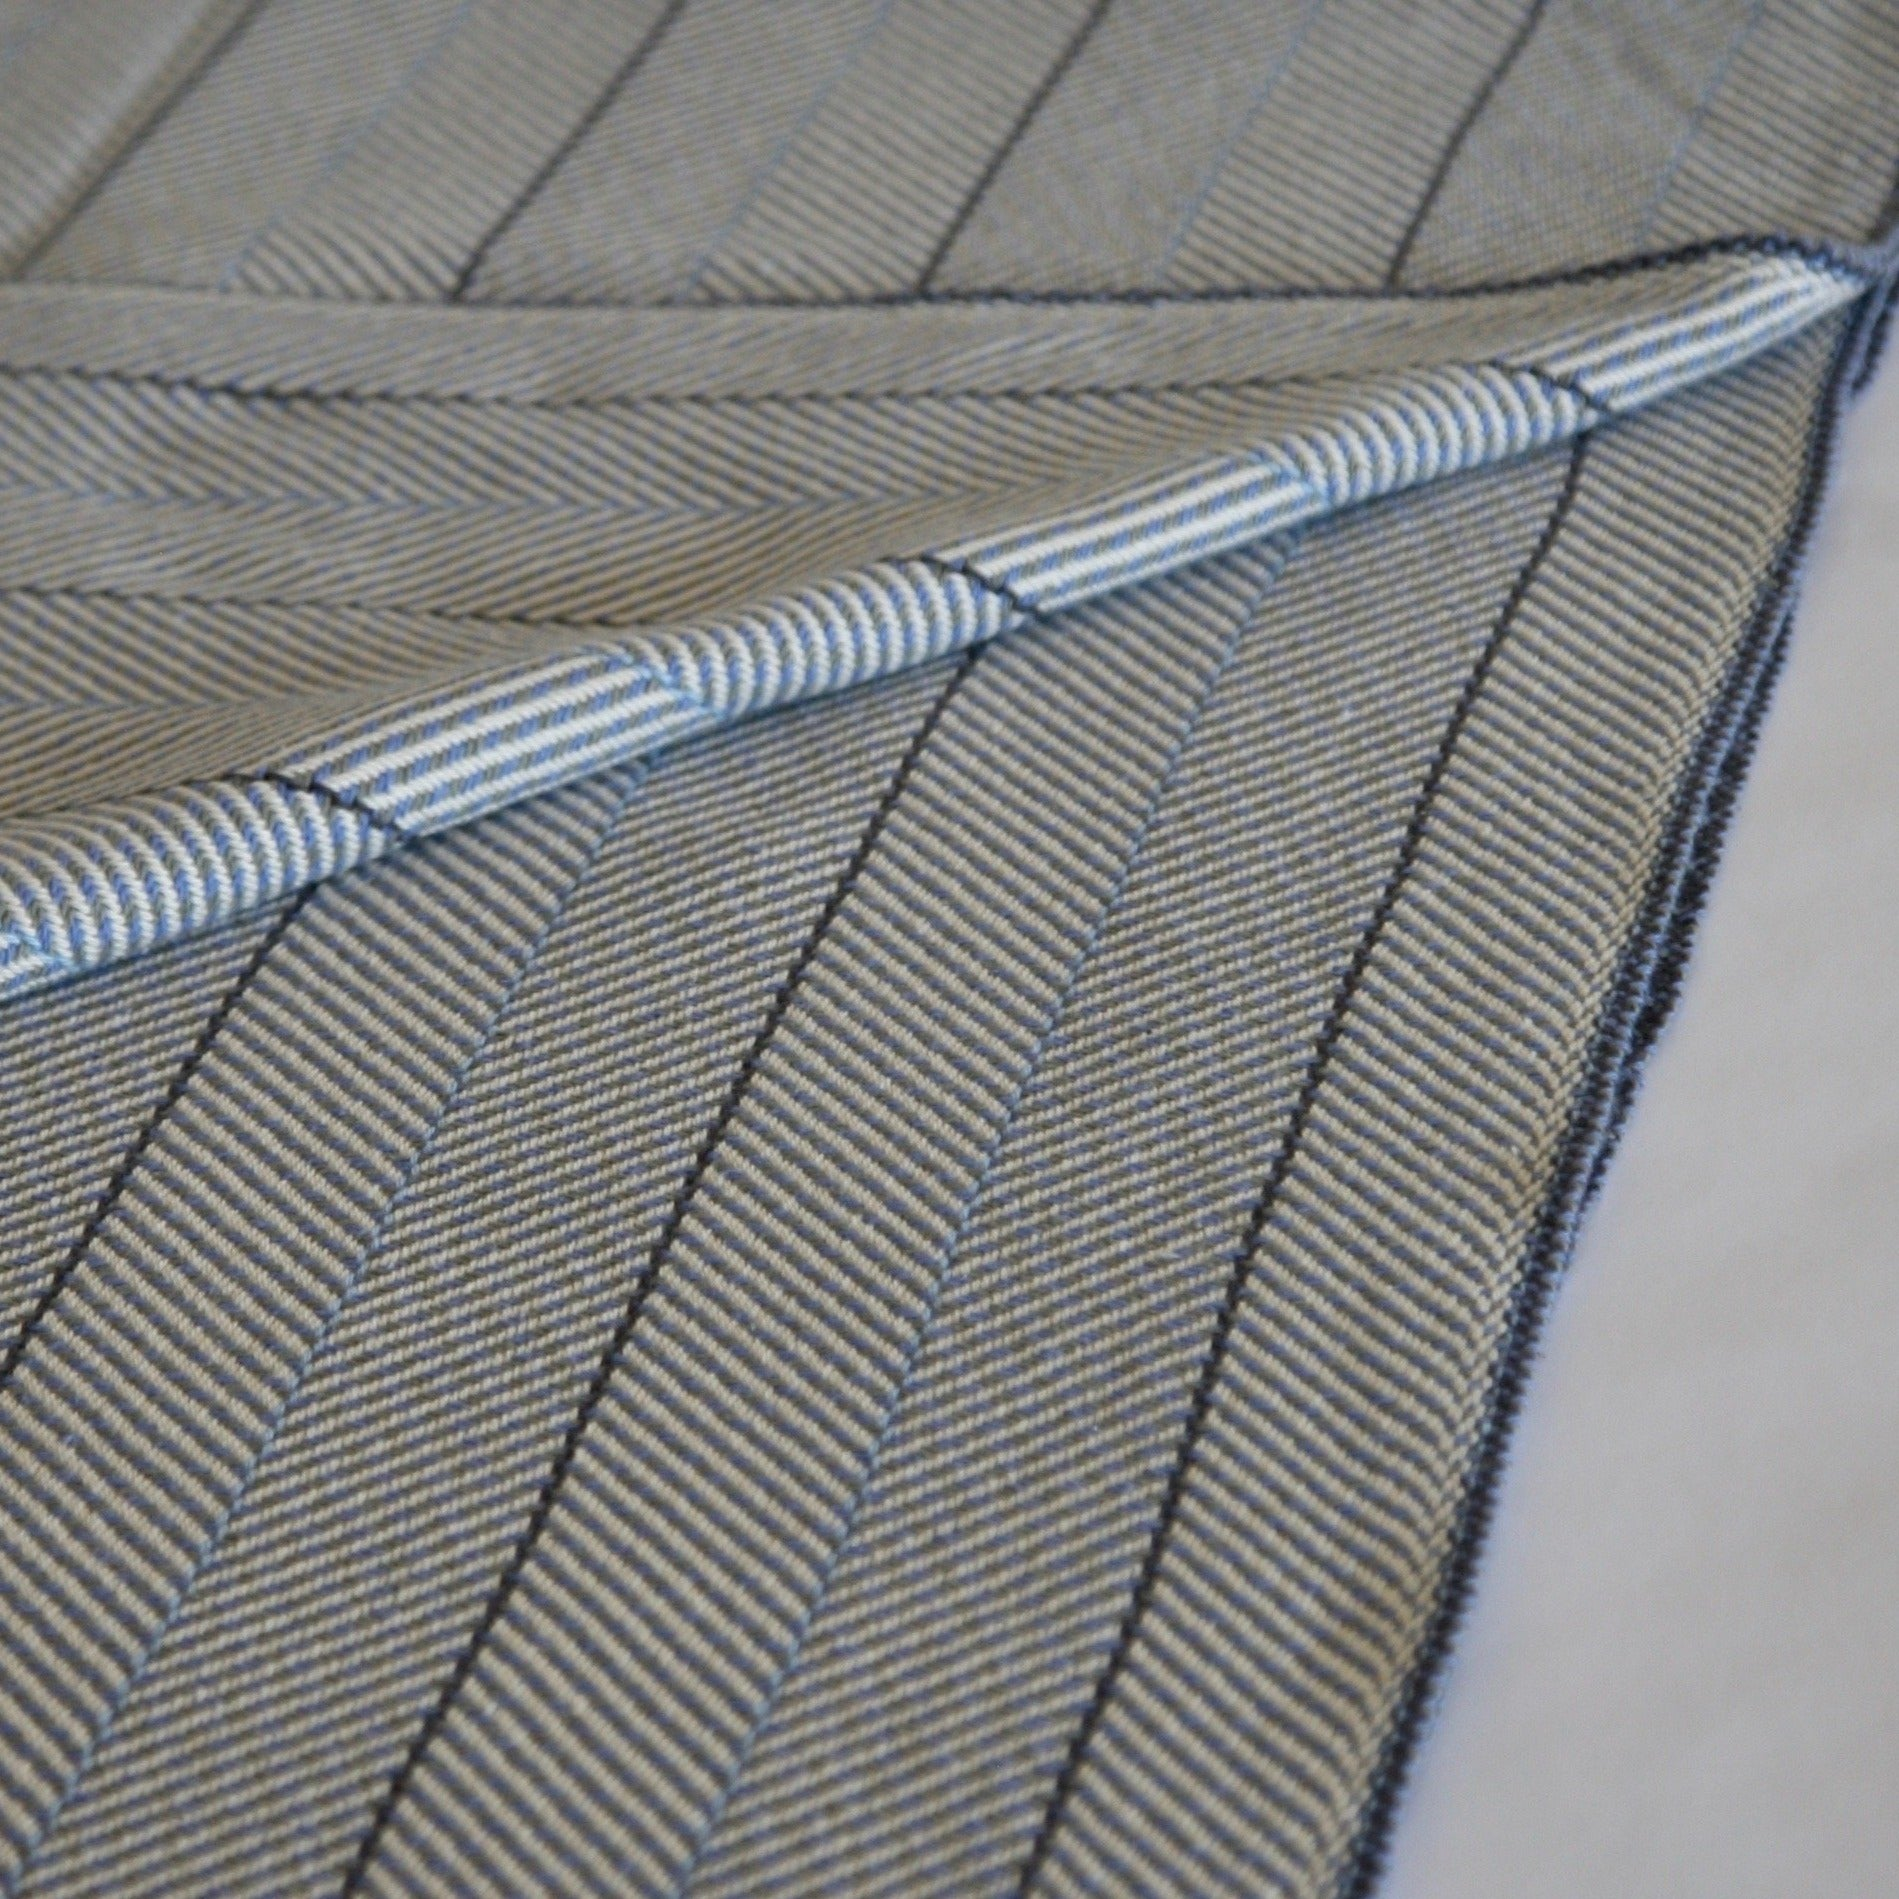 Organic Cotton Blanket - Grey, Light Blue and Periwinkle Herringbone